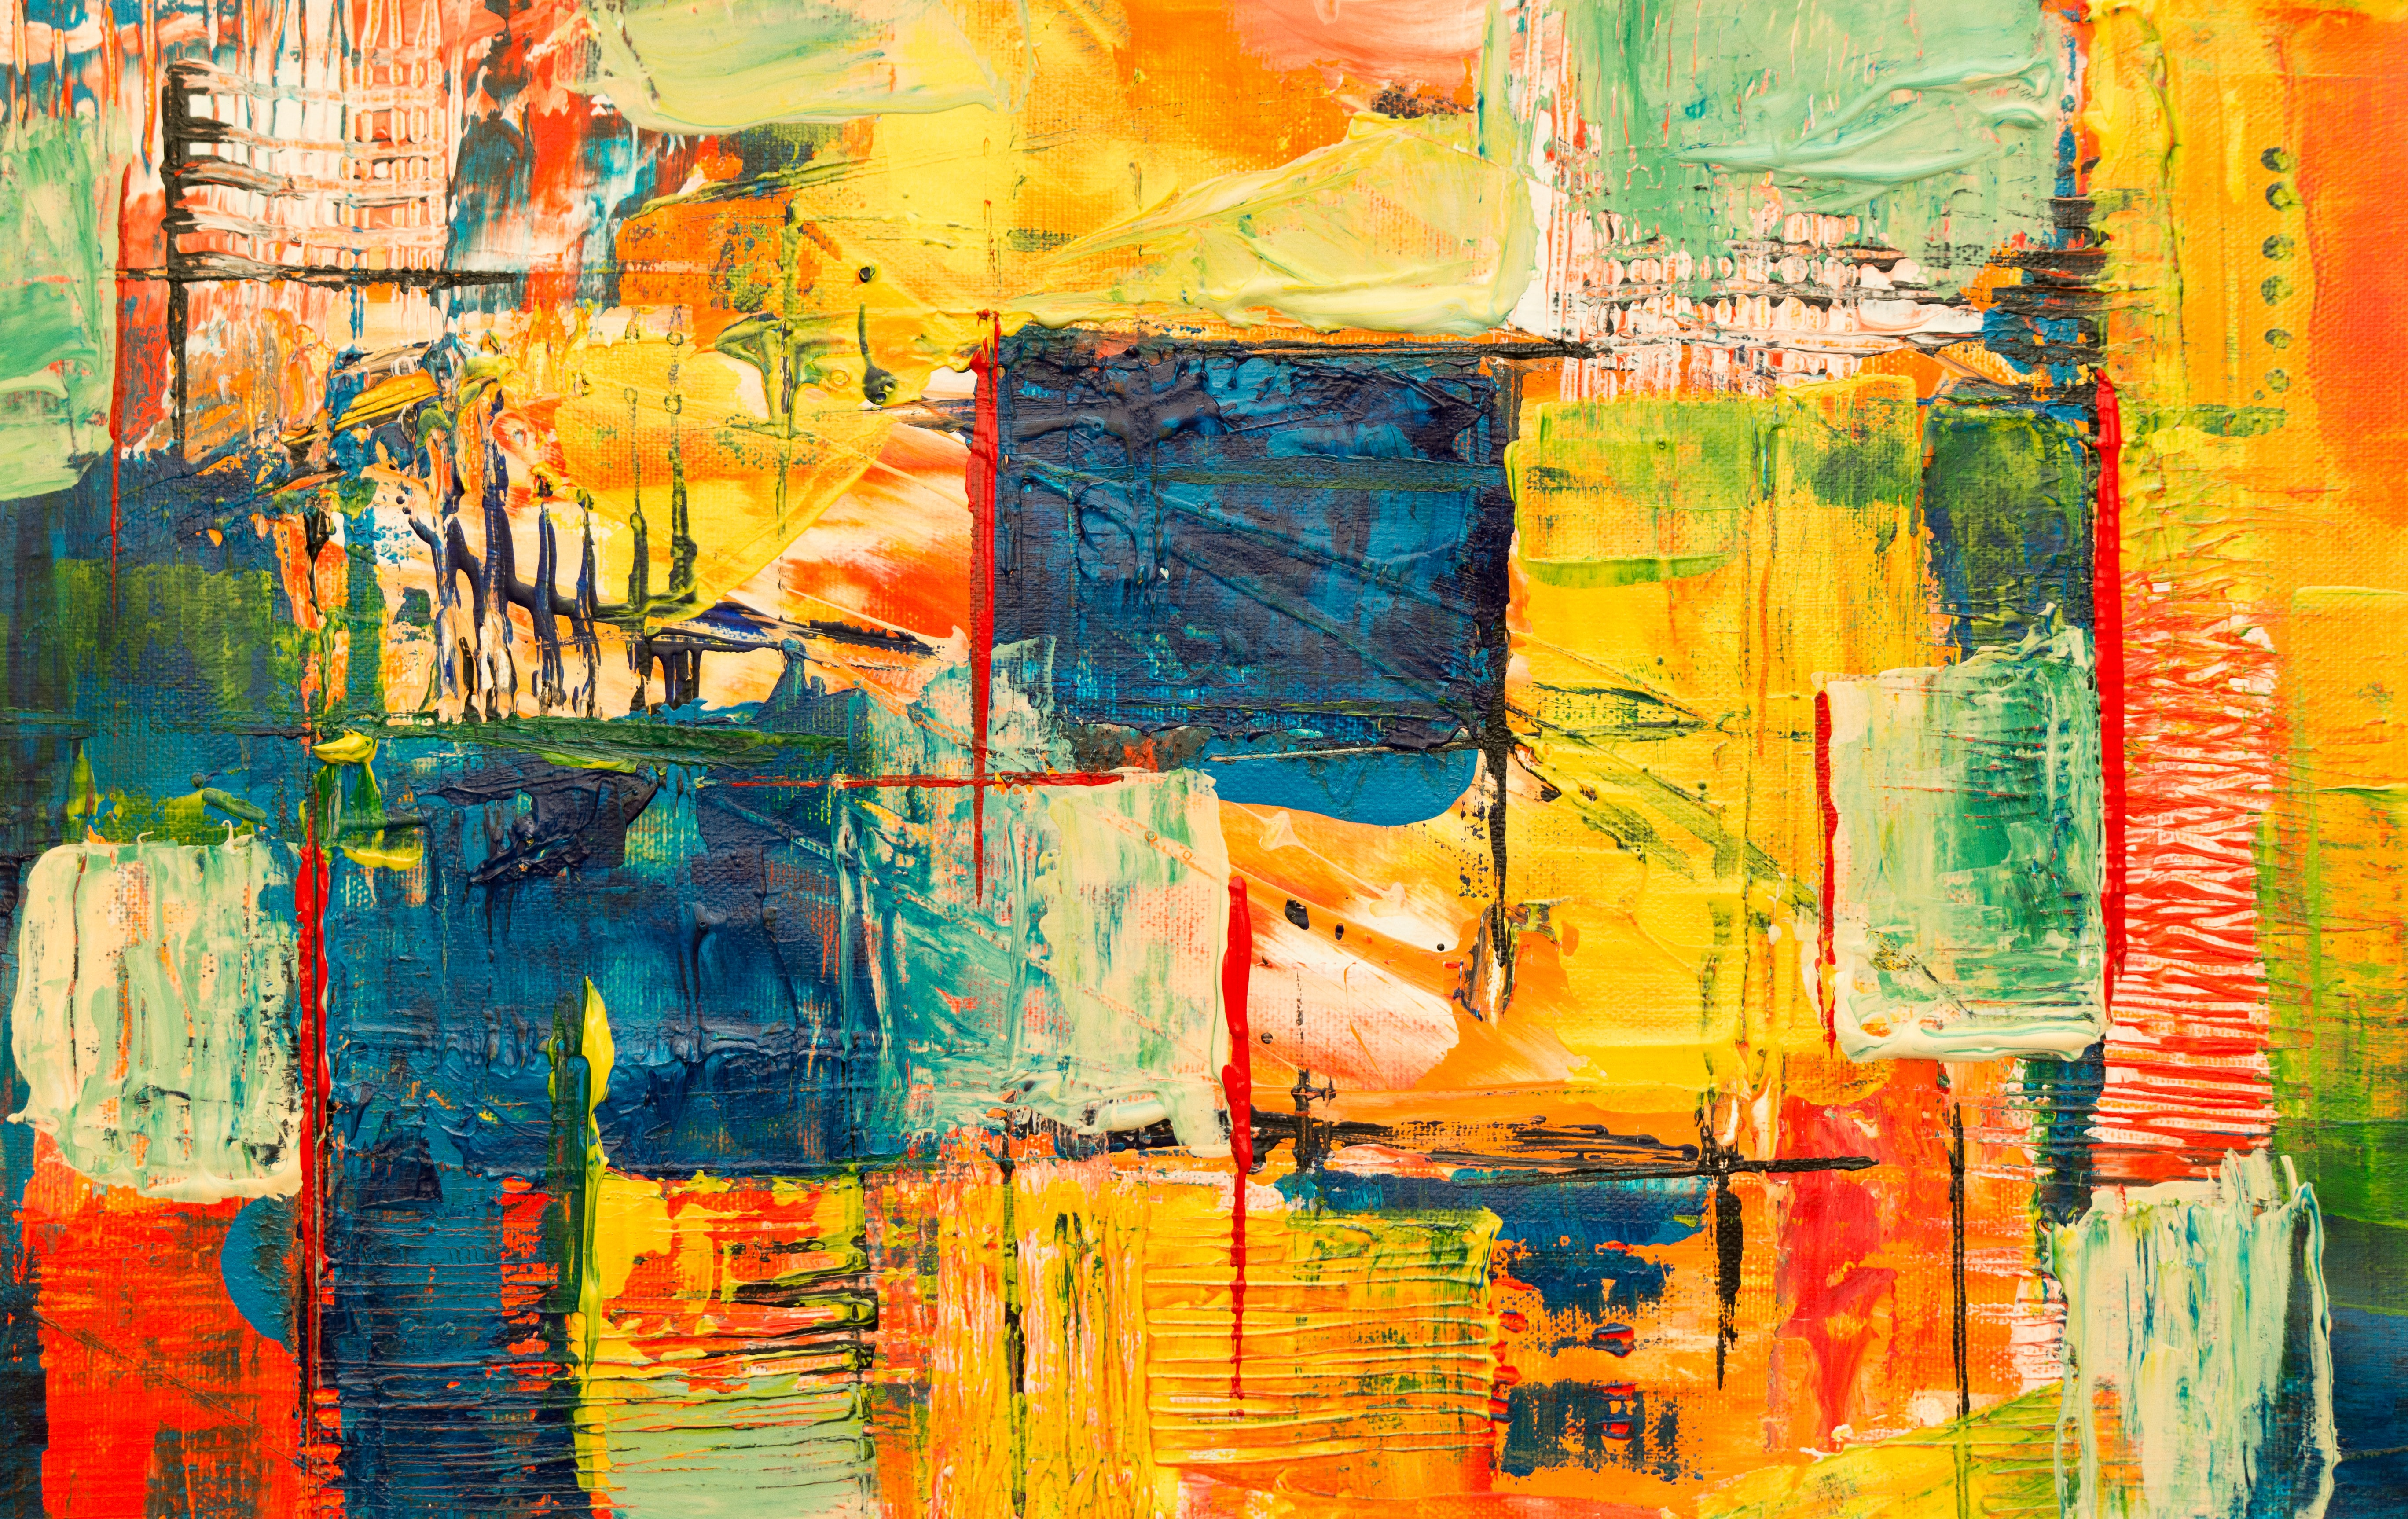 yellow, red, green, and black abstract painting